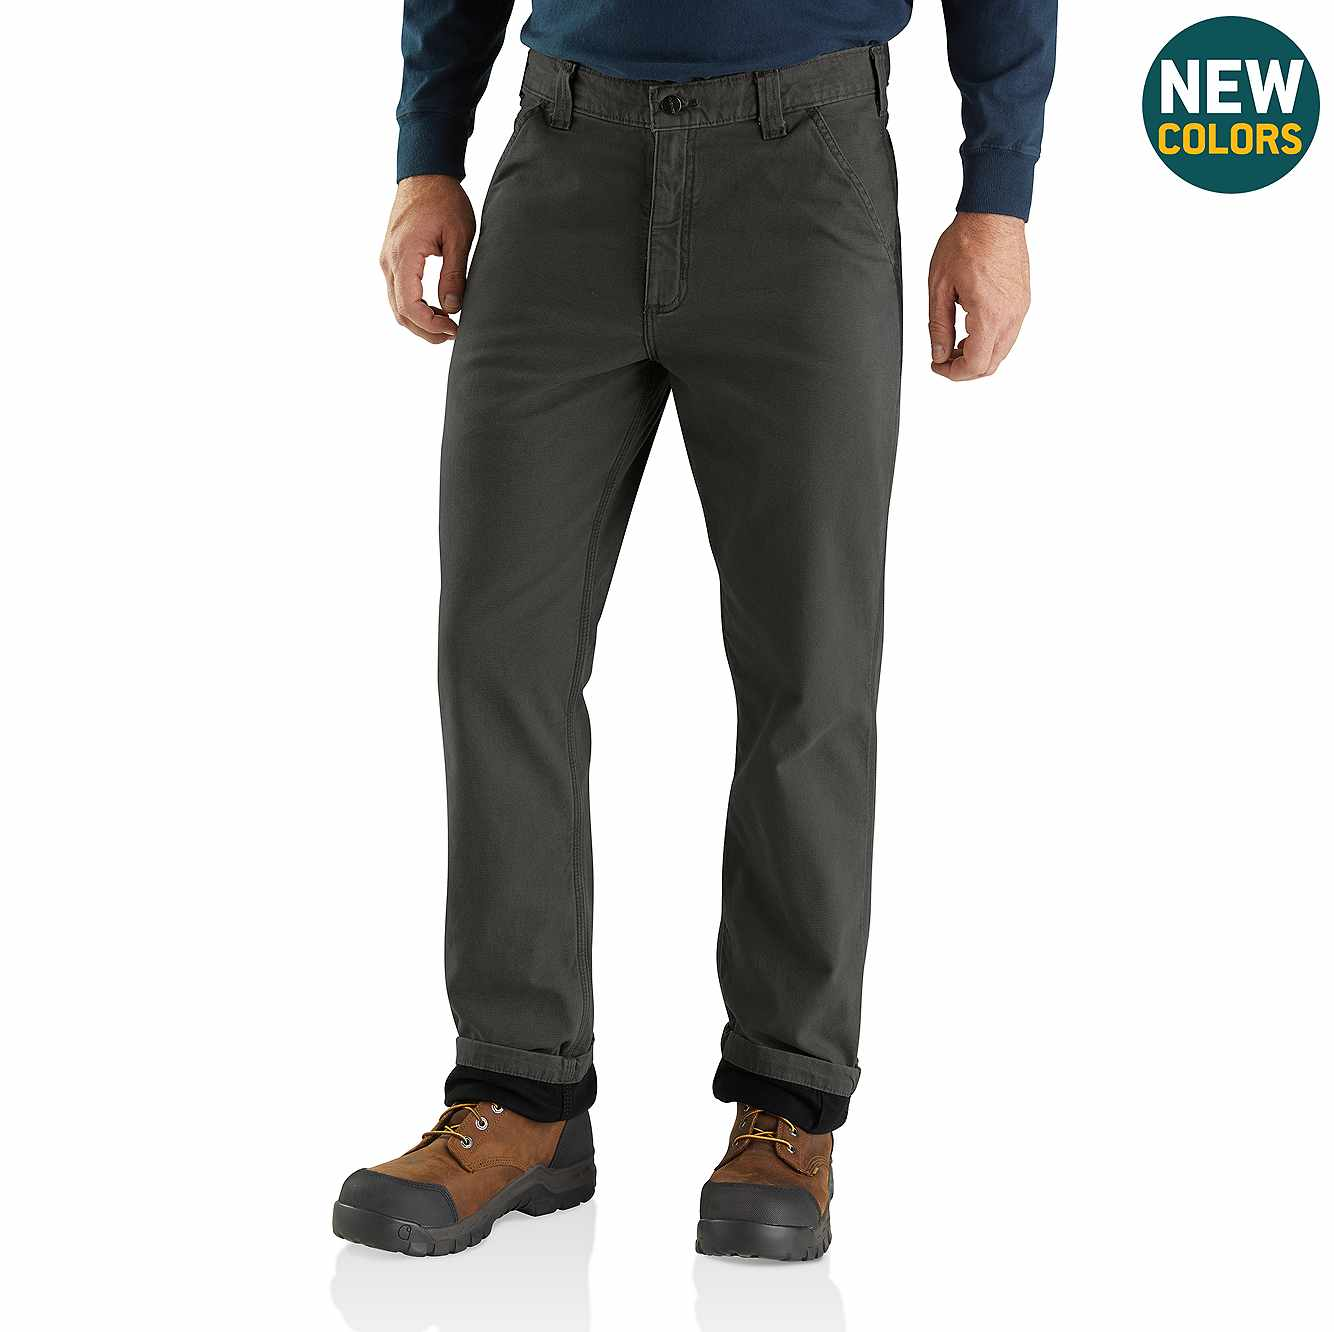 Picture of Rugged Flex® Rigby Dungaree Knit Lined Pant in Peat